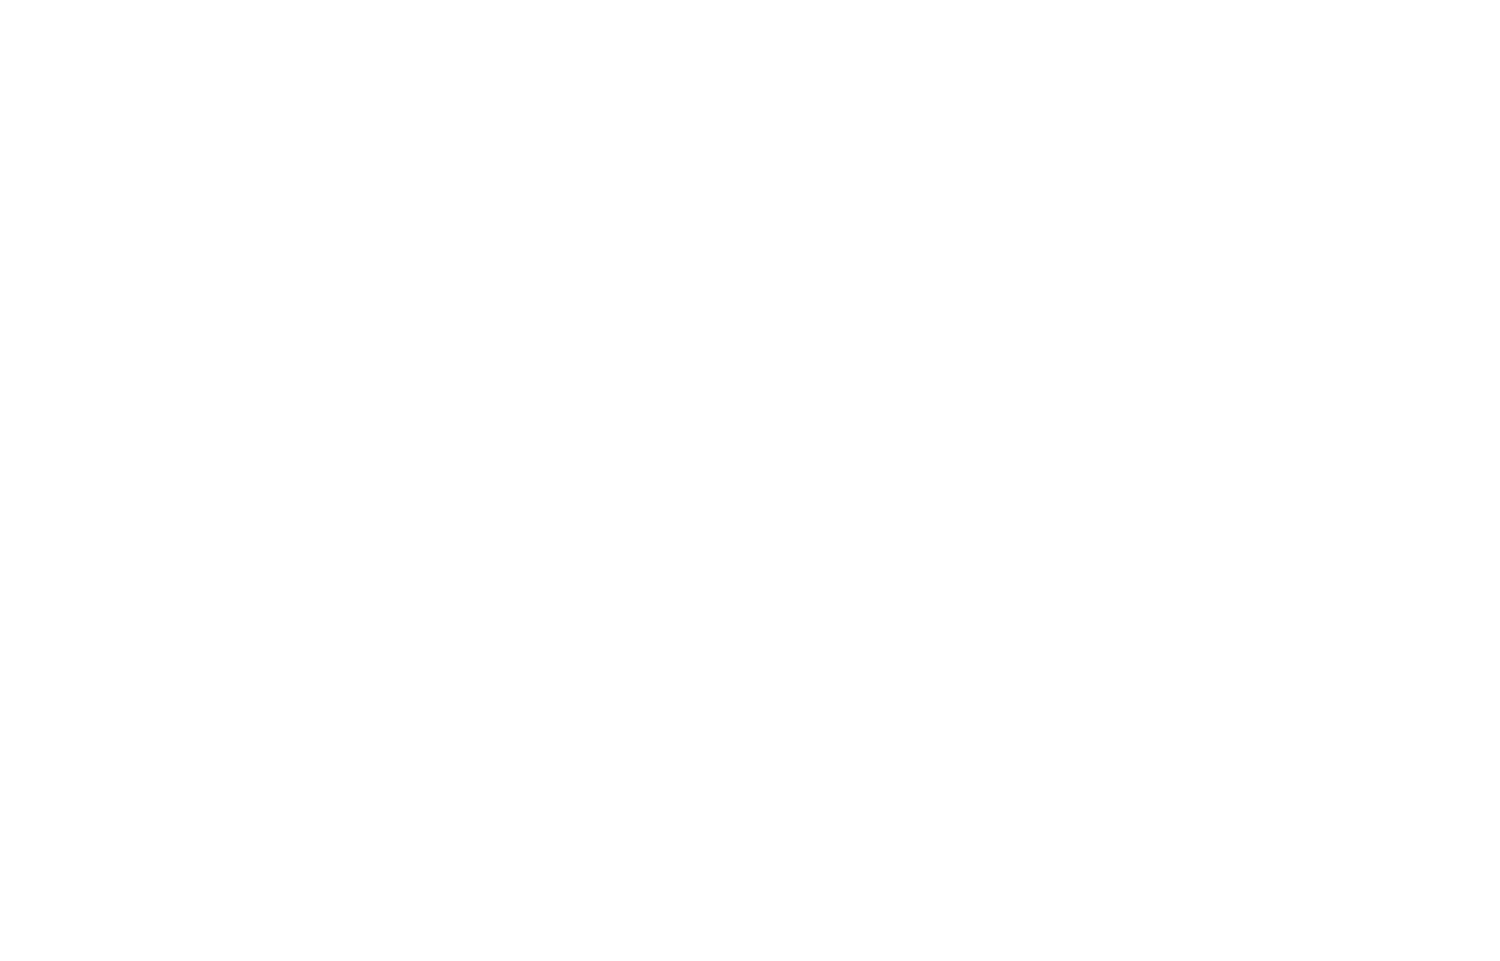 Brown & Wimler Construction